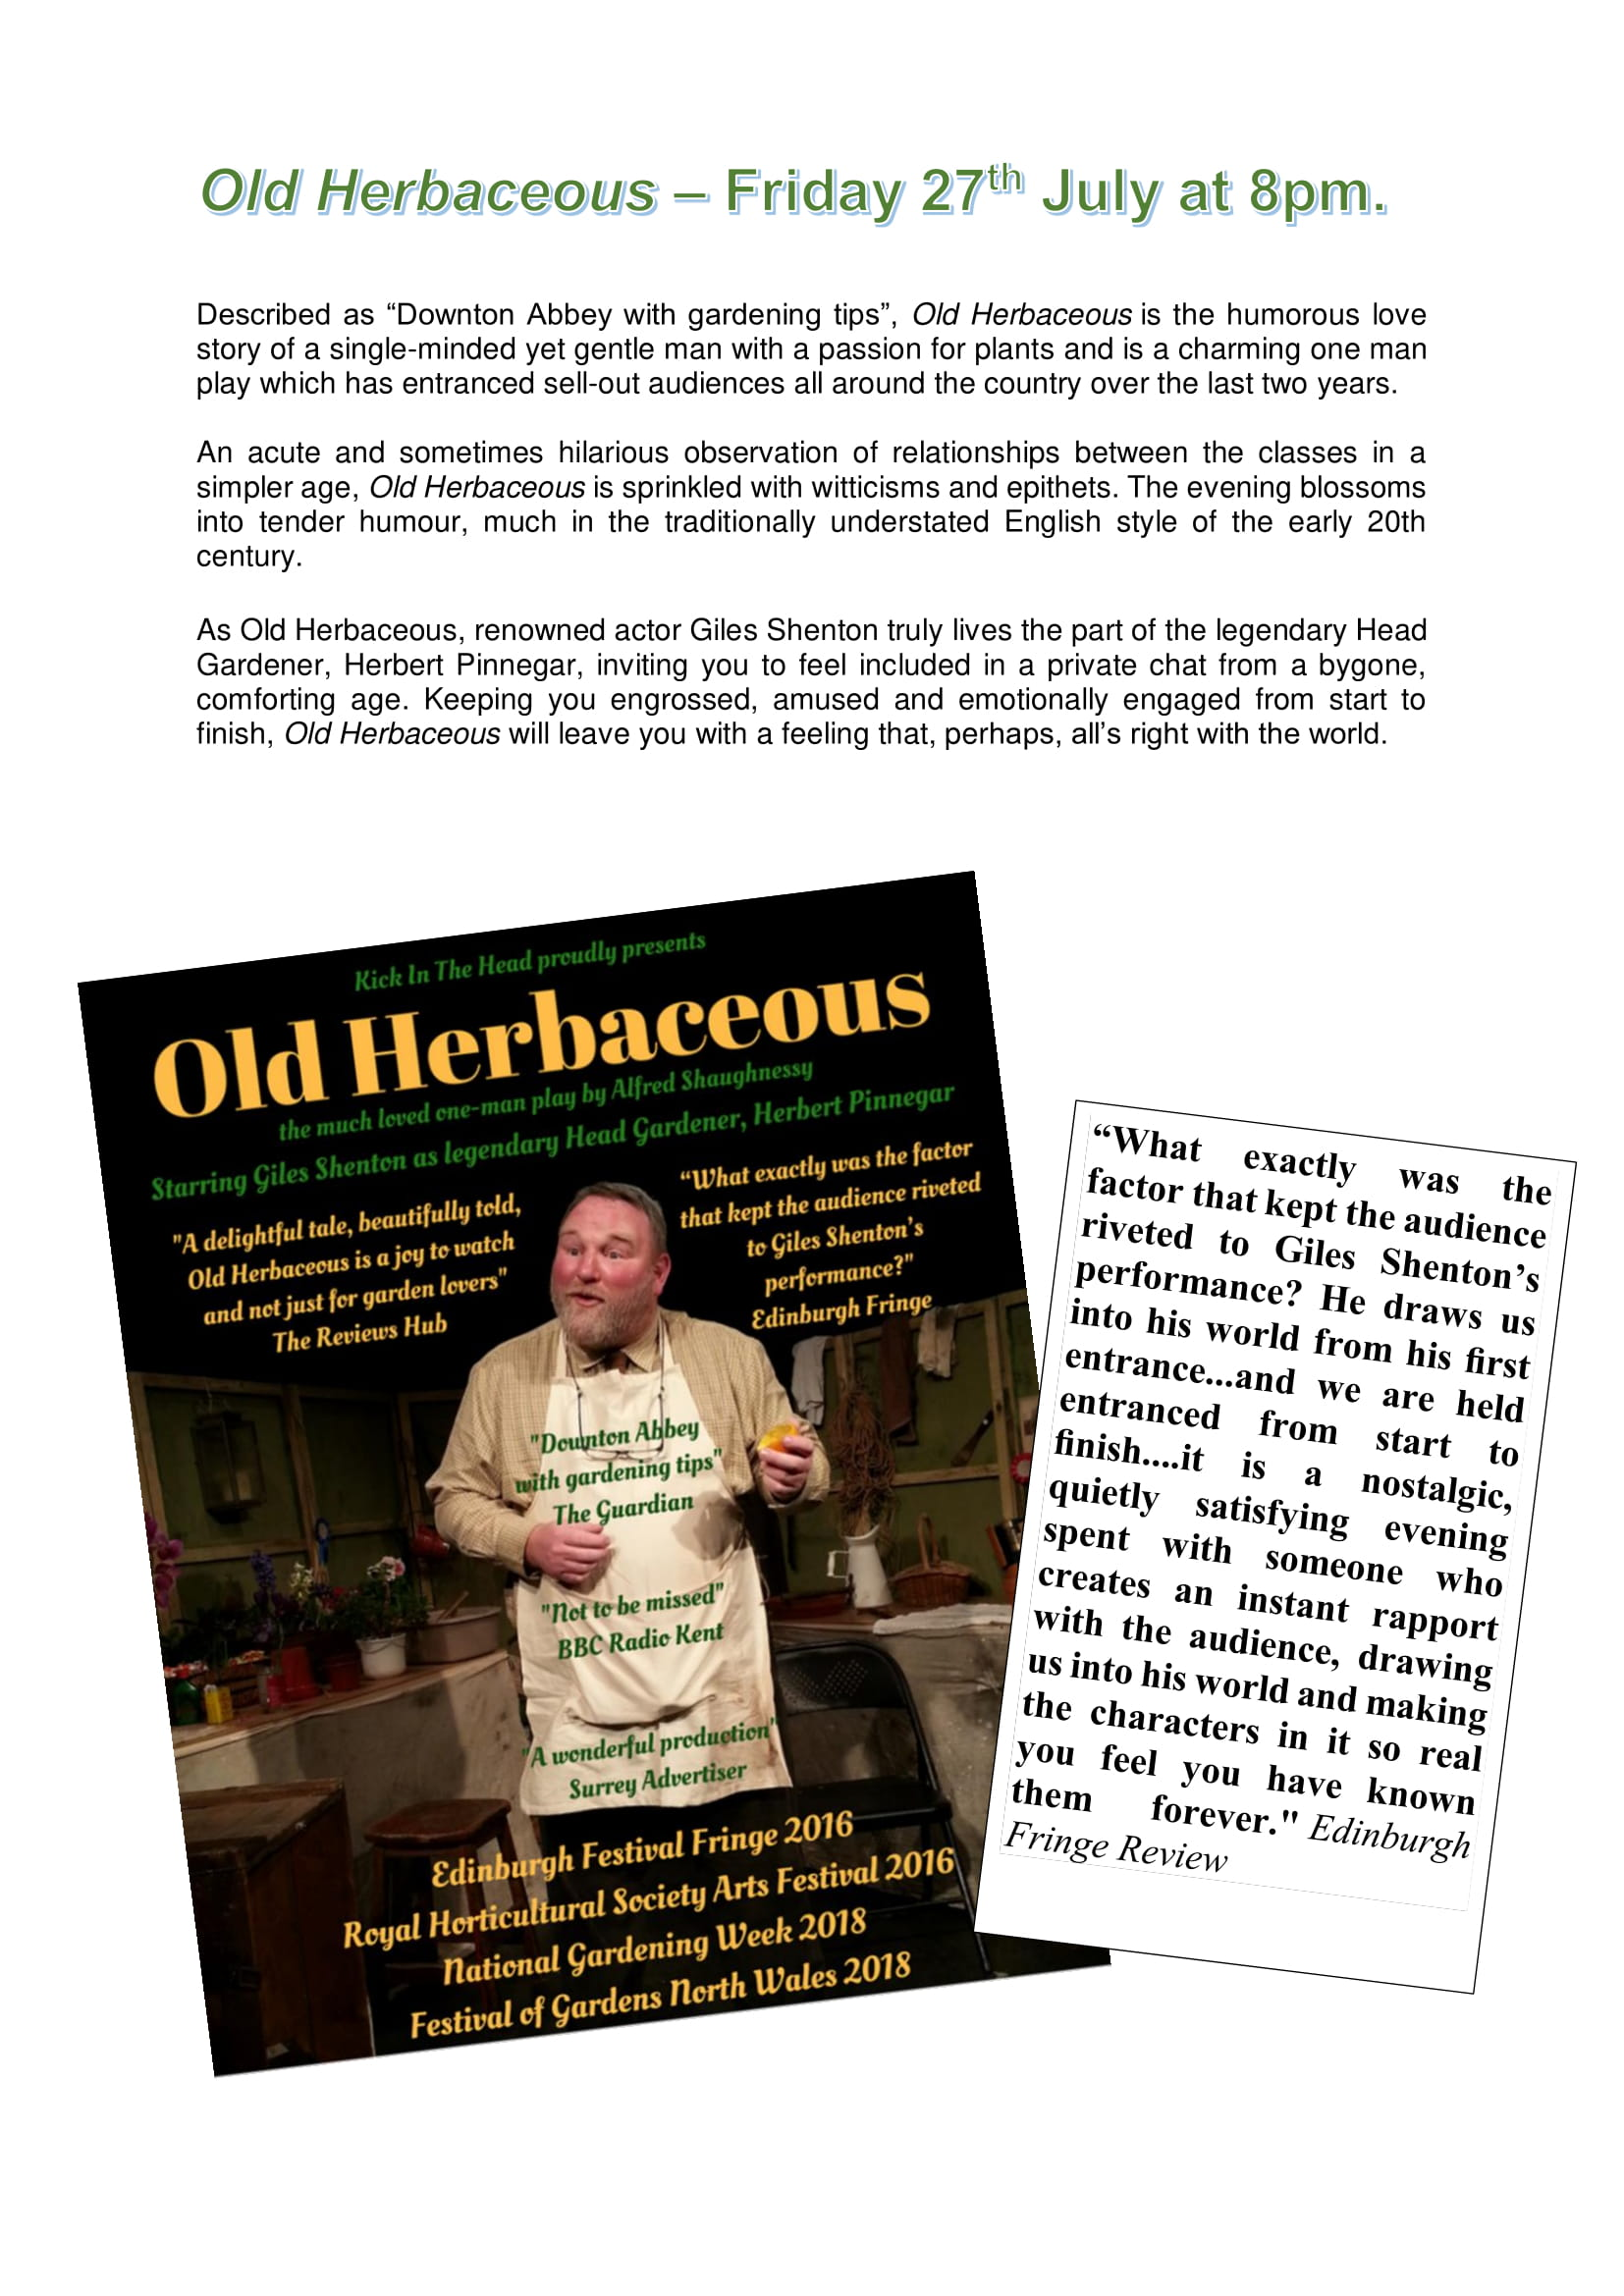 Old Herbaceous flyer-1